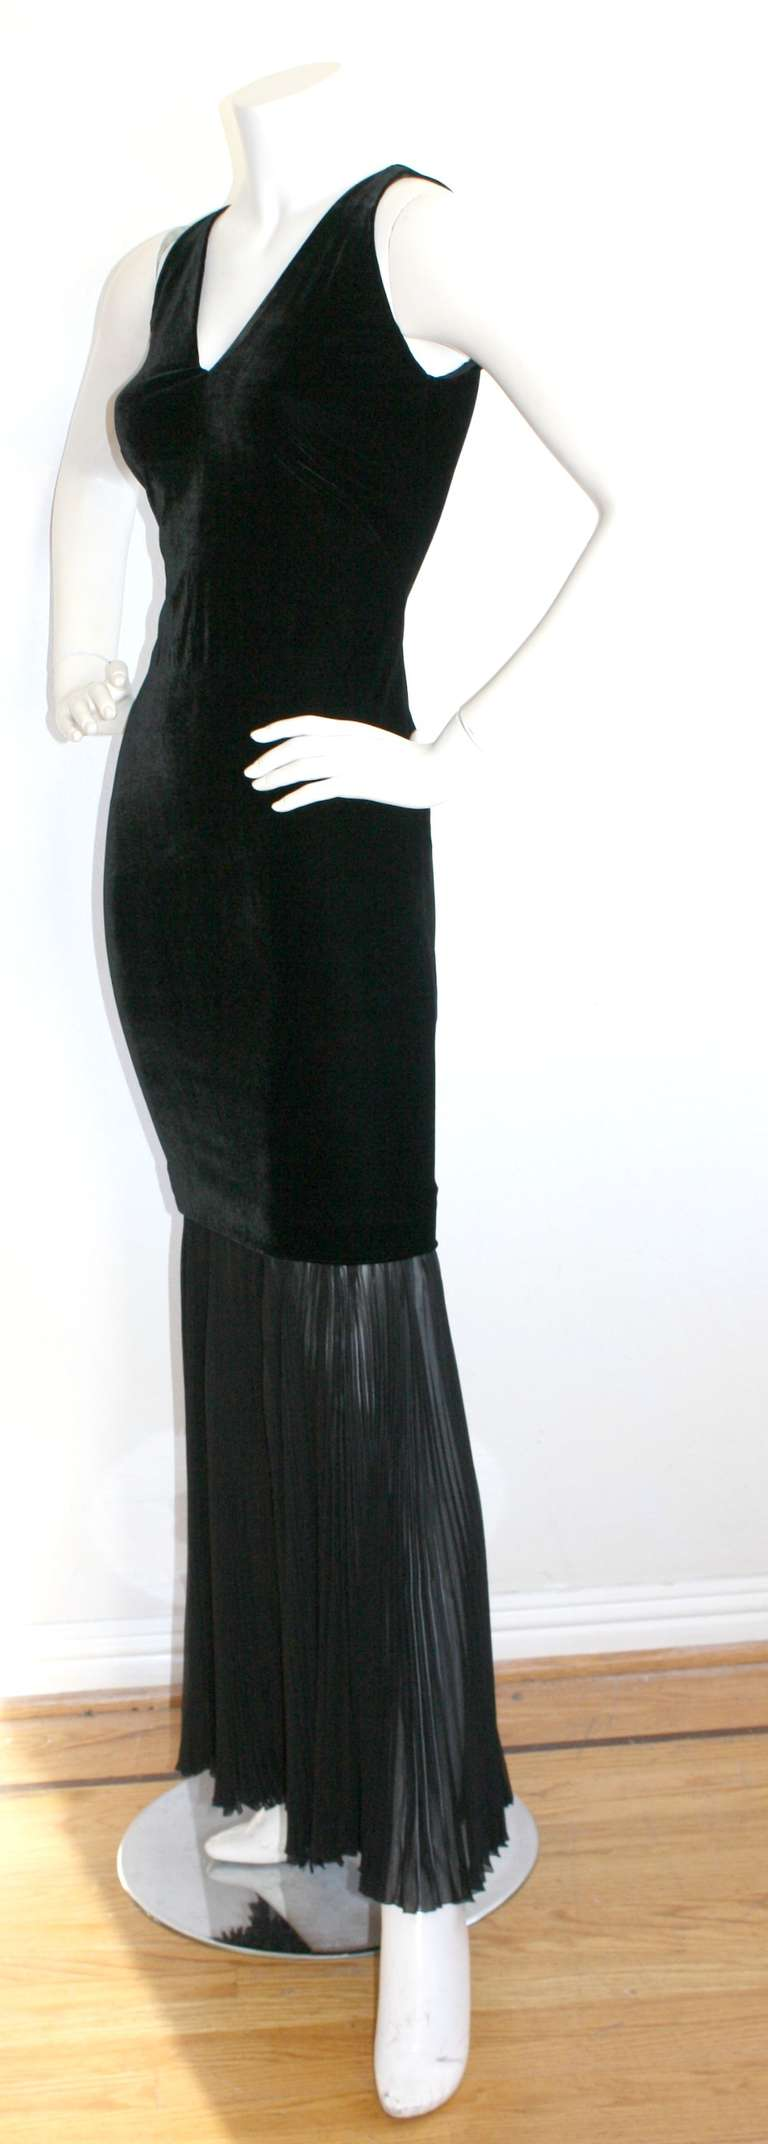 Jean Paul Gaultier Vintage Black Velvet Sexy Mermaid Fishtail Gown 3